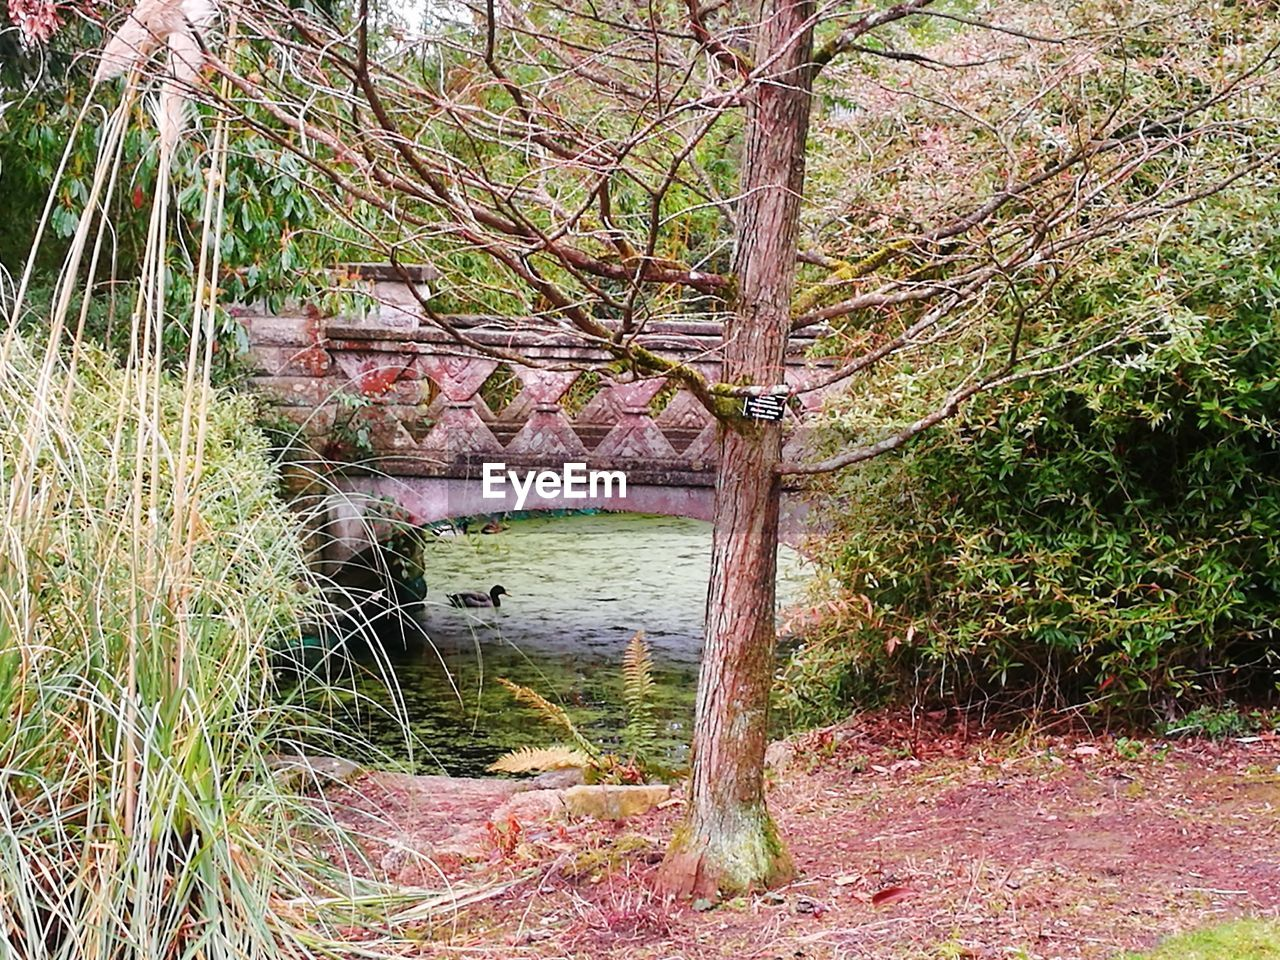 tree, nature, outdoors, architecture, day, built structure, growth, water, no people, river, tranquility, forest, bridge - man made structure, beauty in nature, scenics, branch